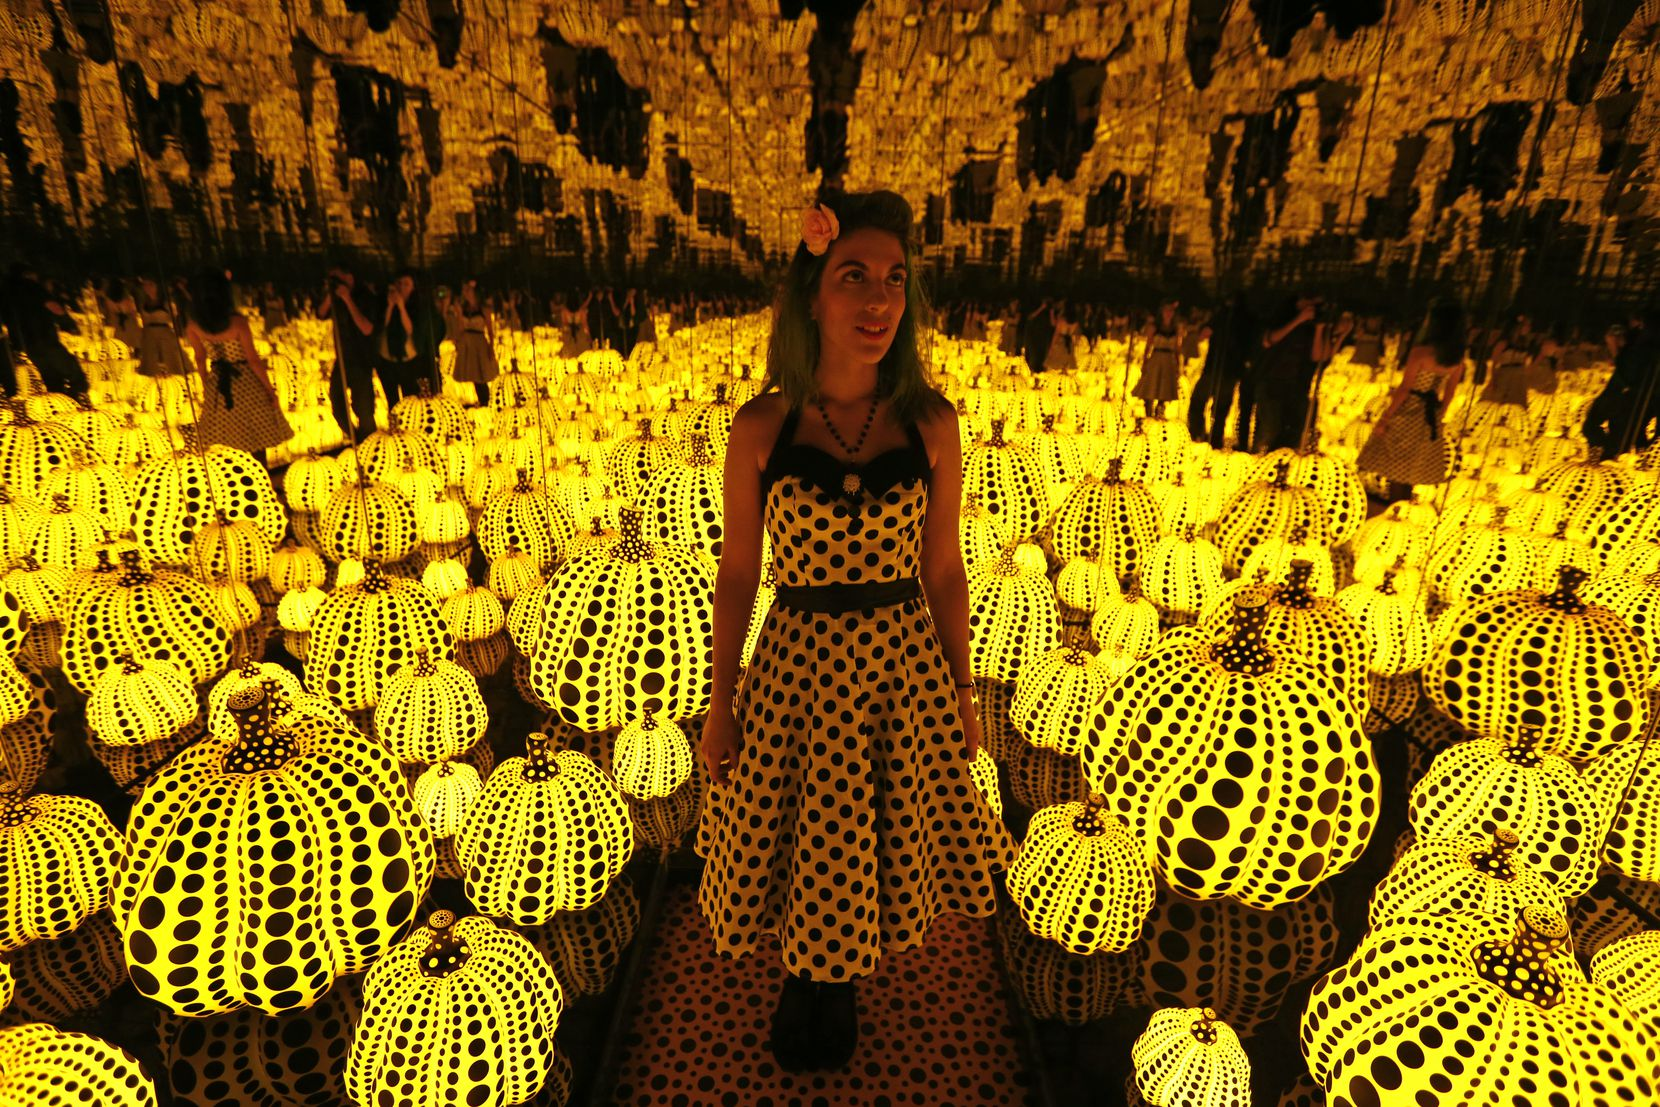 """Lyza Hernandez admired Yayoi Kusama's installation """"All the Eternal Love I Have for the Pumpkins"""" at the Dallas Museum of Art in September 2017."""